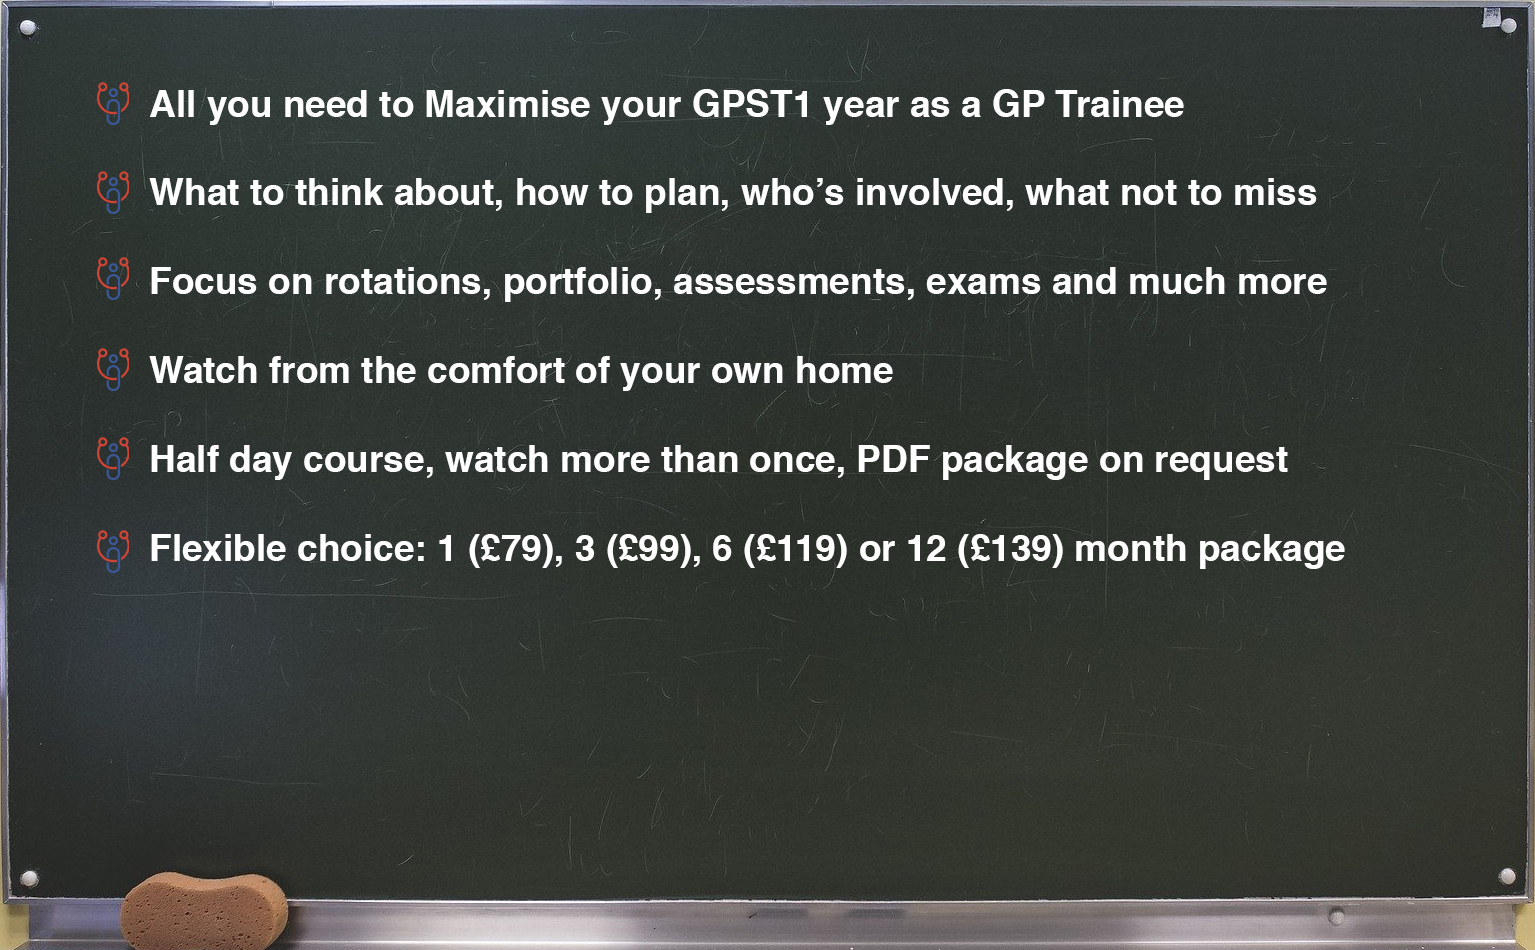 GPST1 Trainee Max Online Course 1 - MRCGP CSA, AKT and PLAB Exam Courses and Online Webinars - Arora Medical Education